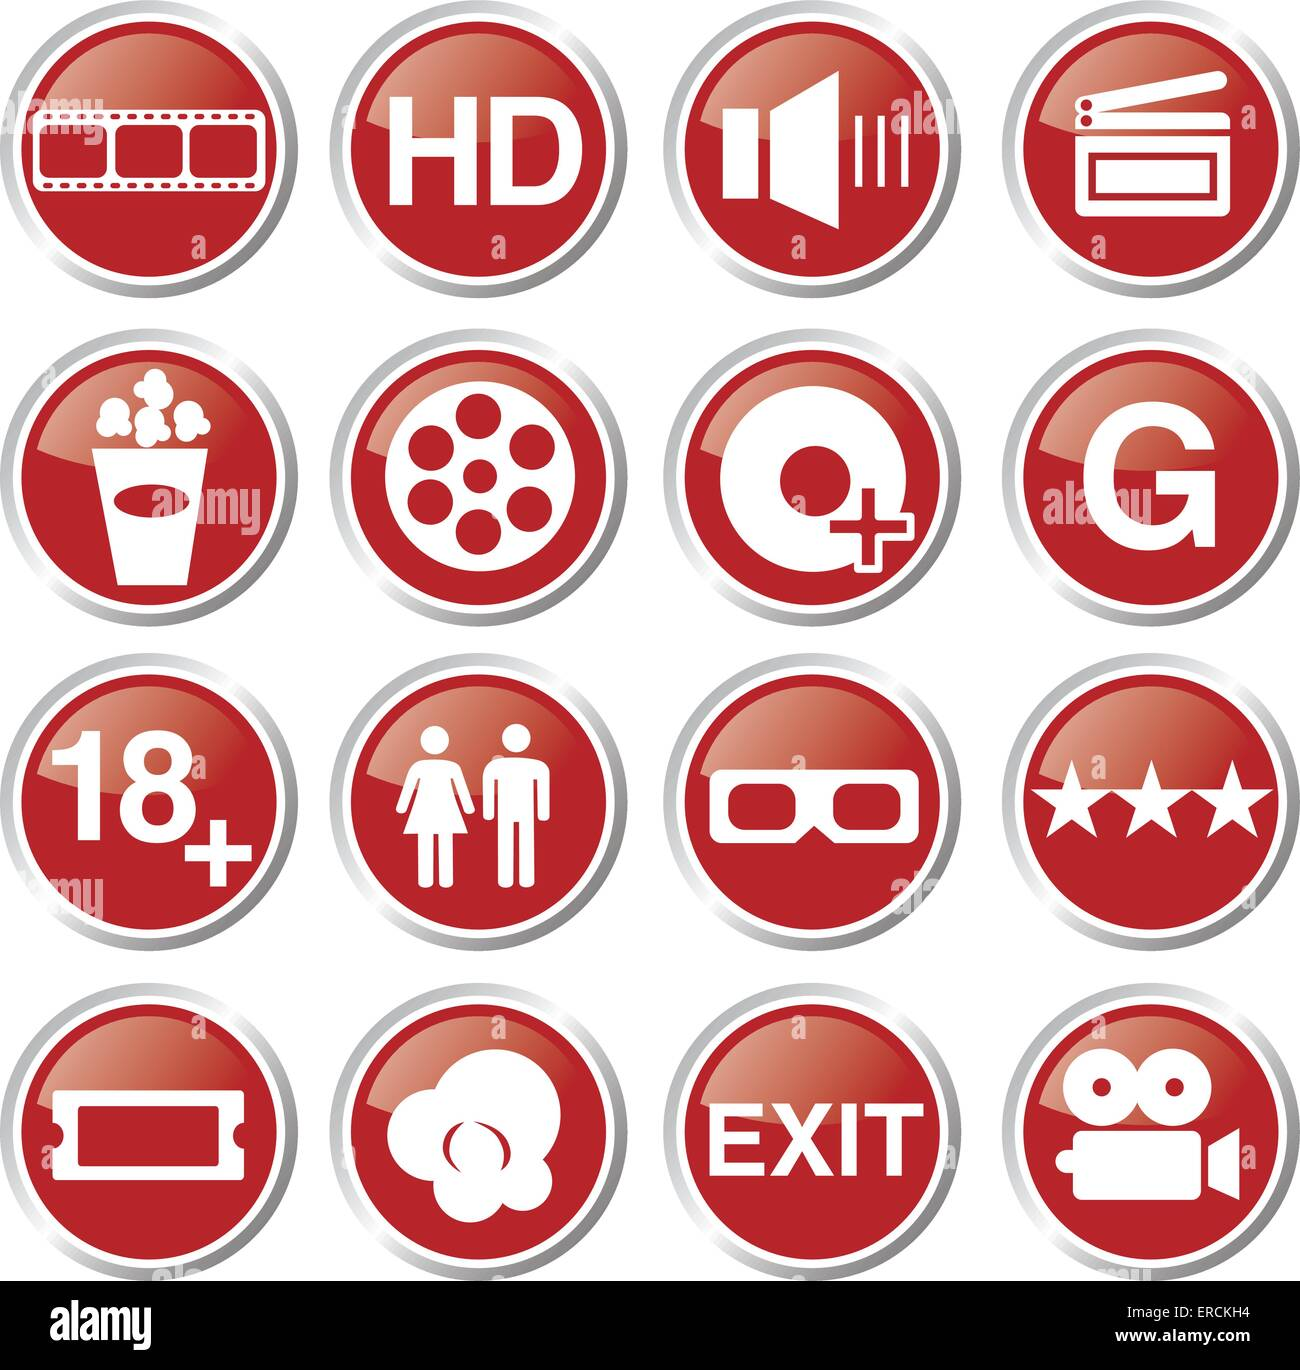 movie and cinema icon set - Stock Image